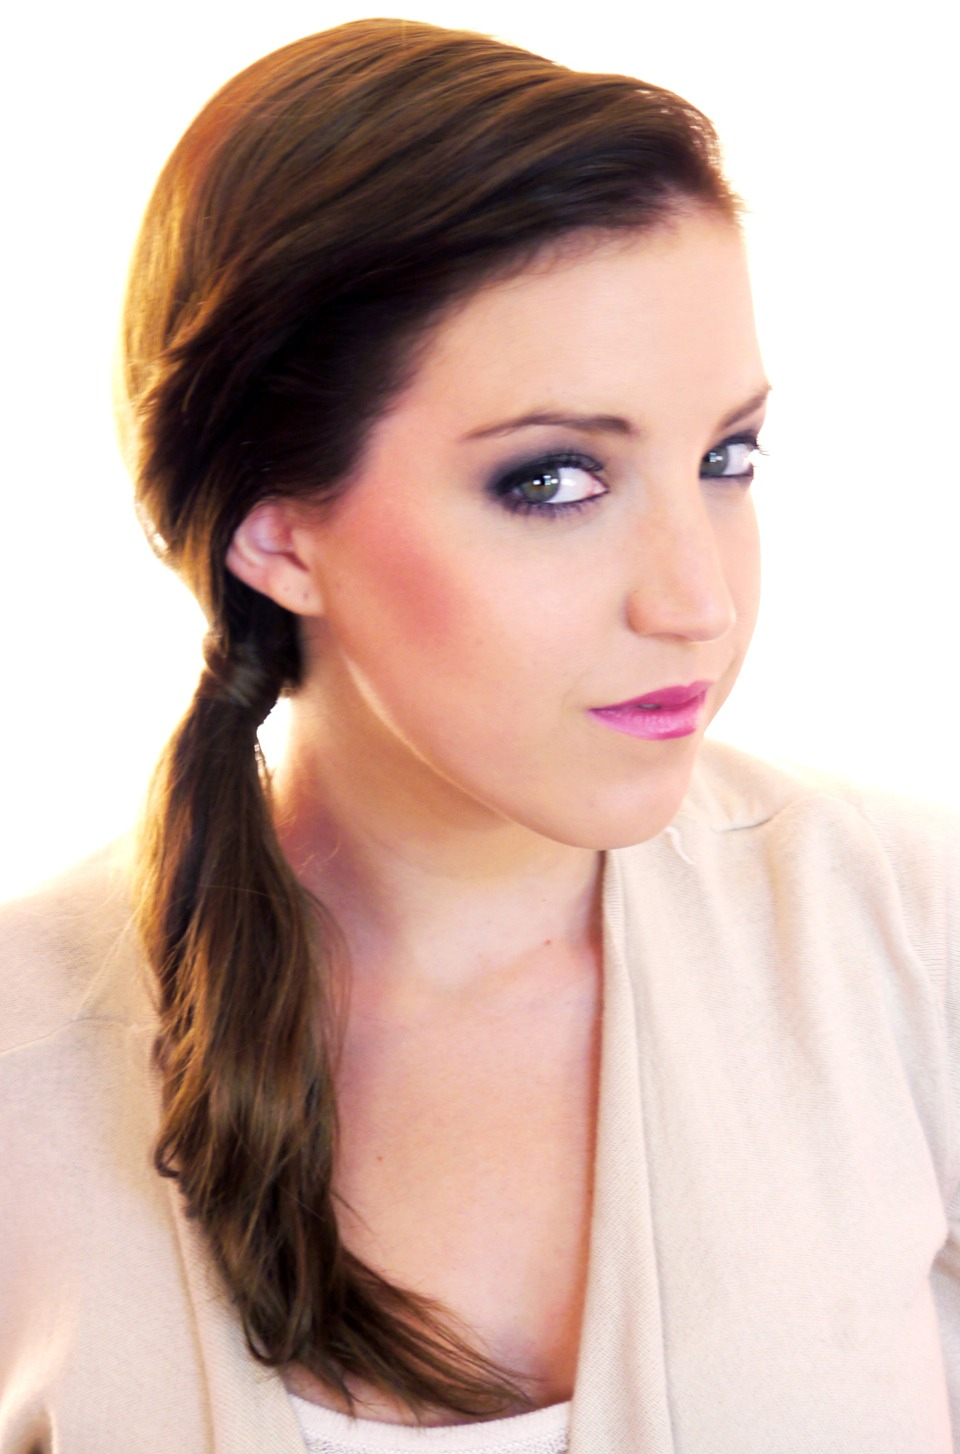 First is a simple side pony tail if you have frizzy hair like me then twist your hair at the bottom and spritz some hairspray, same goes for those pesky fly-a-ways!